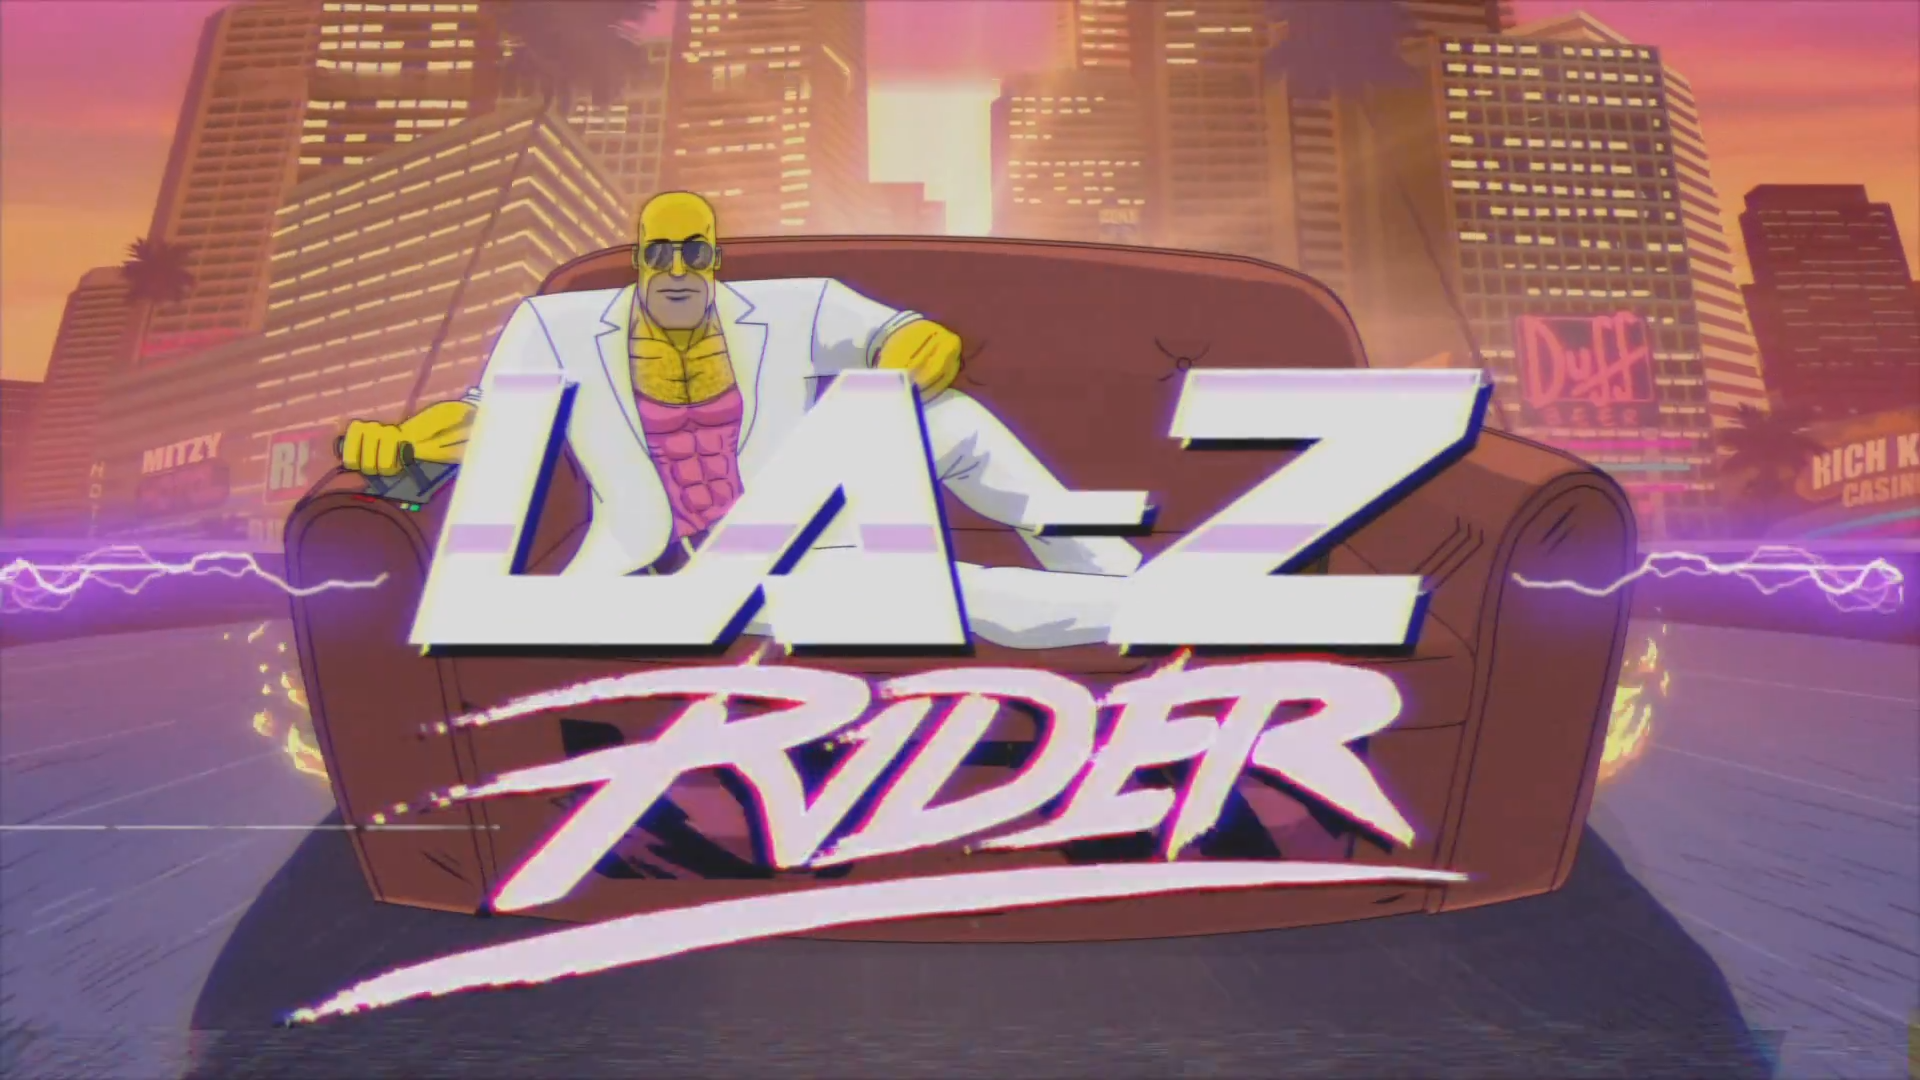 The Simpsons Couch Gag LAZ Rider Screen cap wallpapers